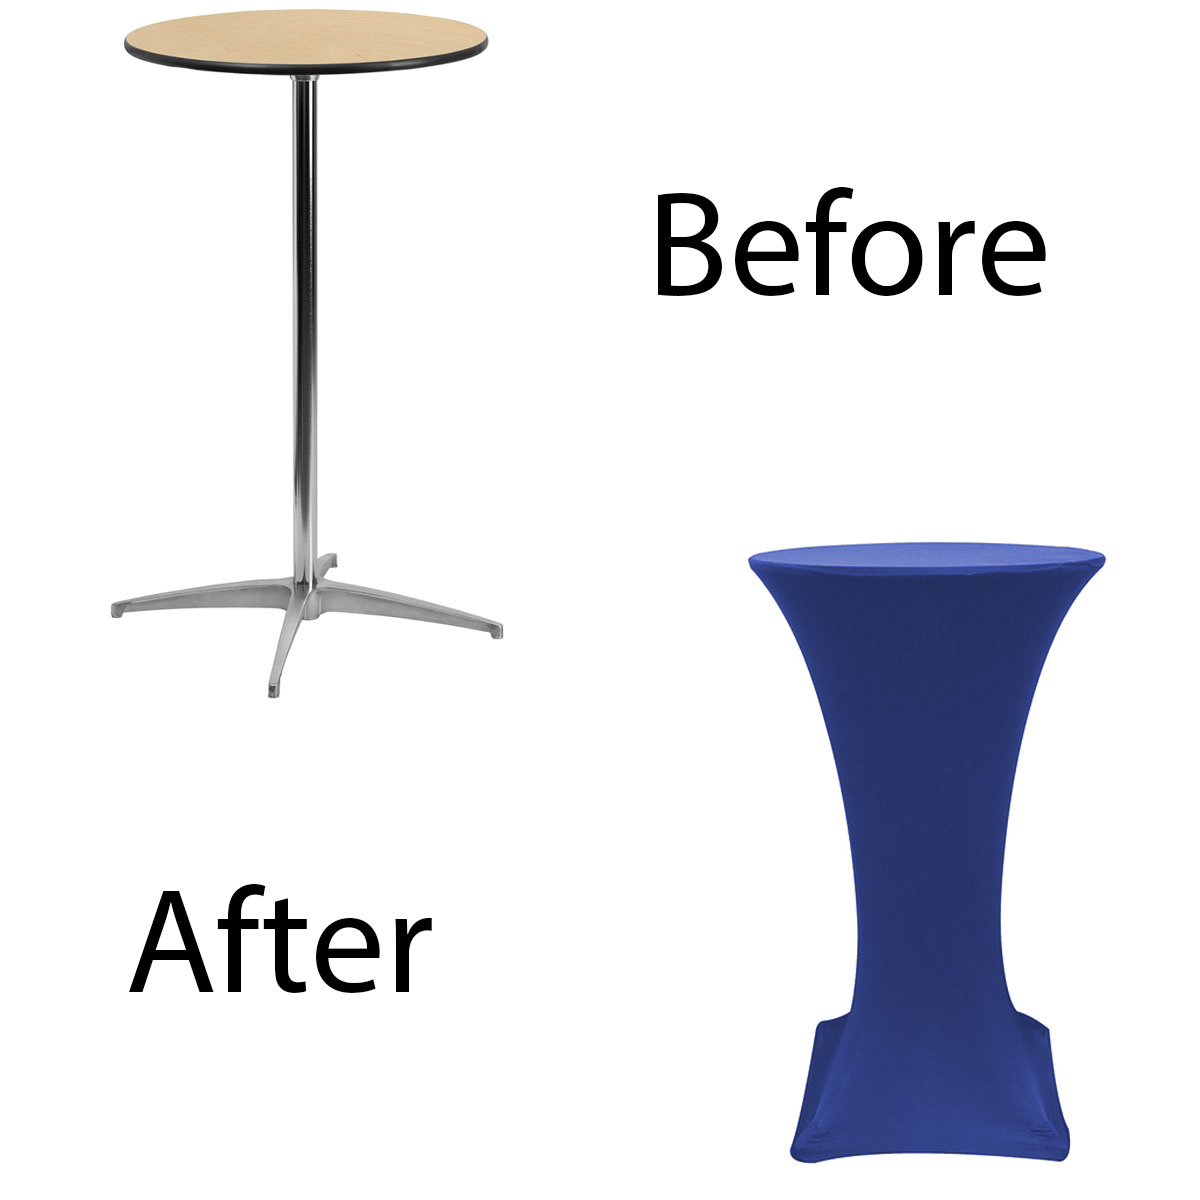 24-inch-highboy-cocktail-spandex-table-covers-royal-before-after.jpg